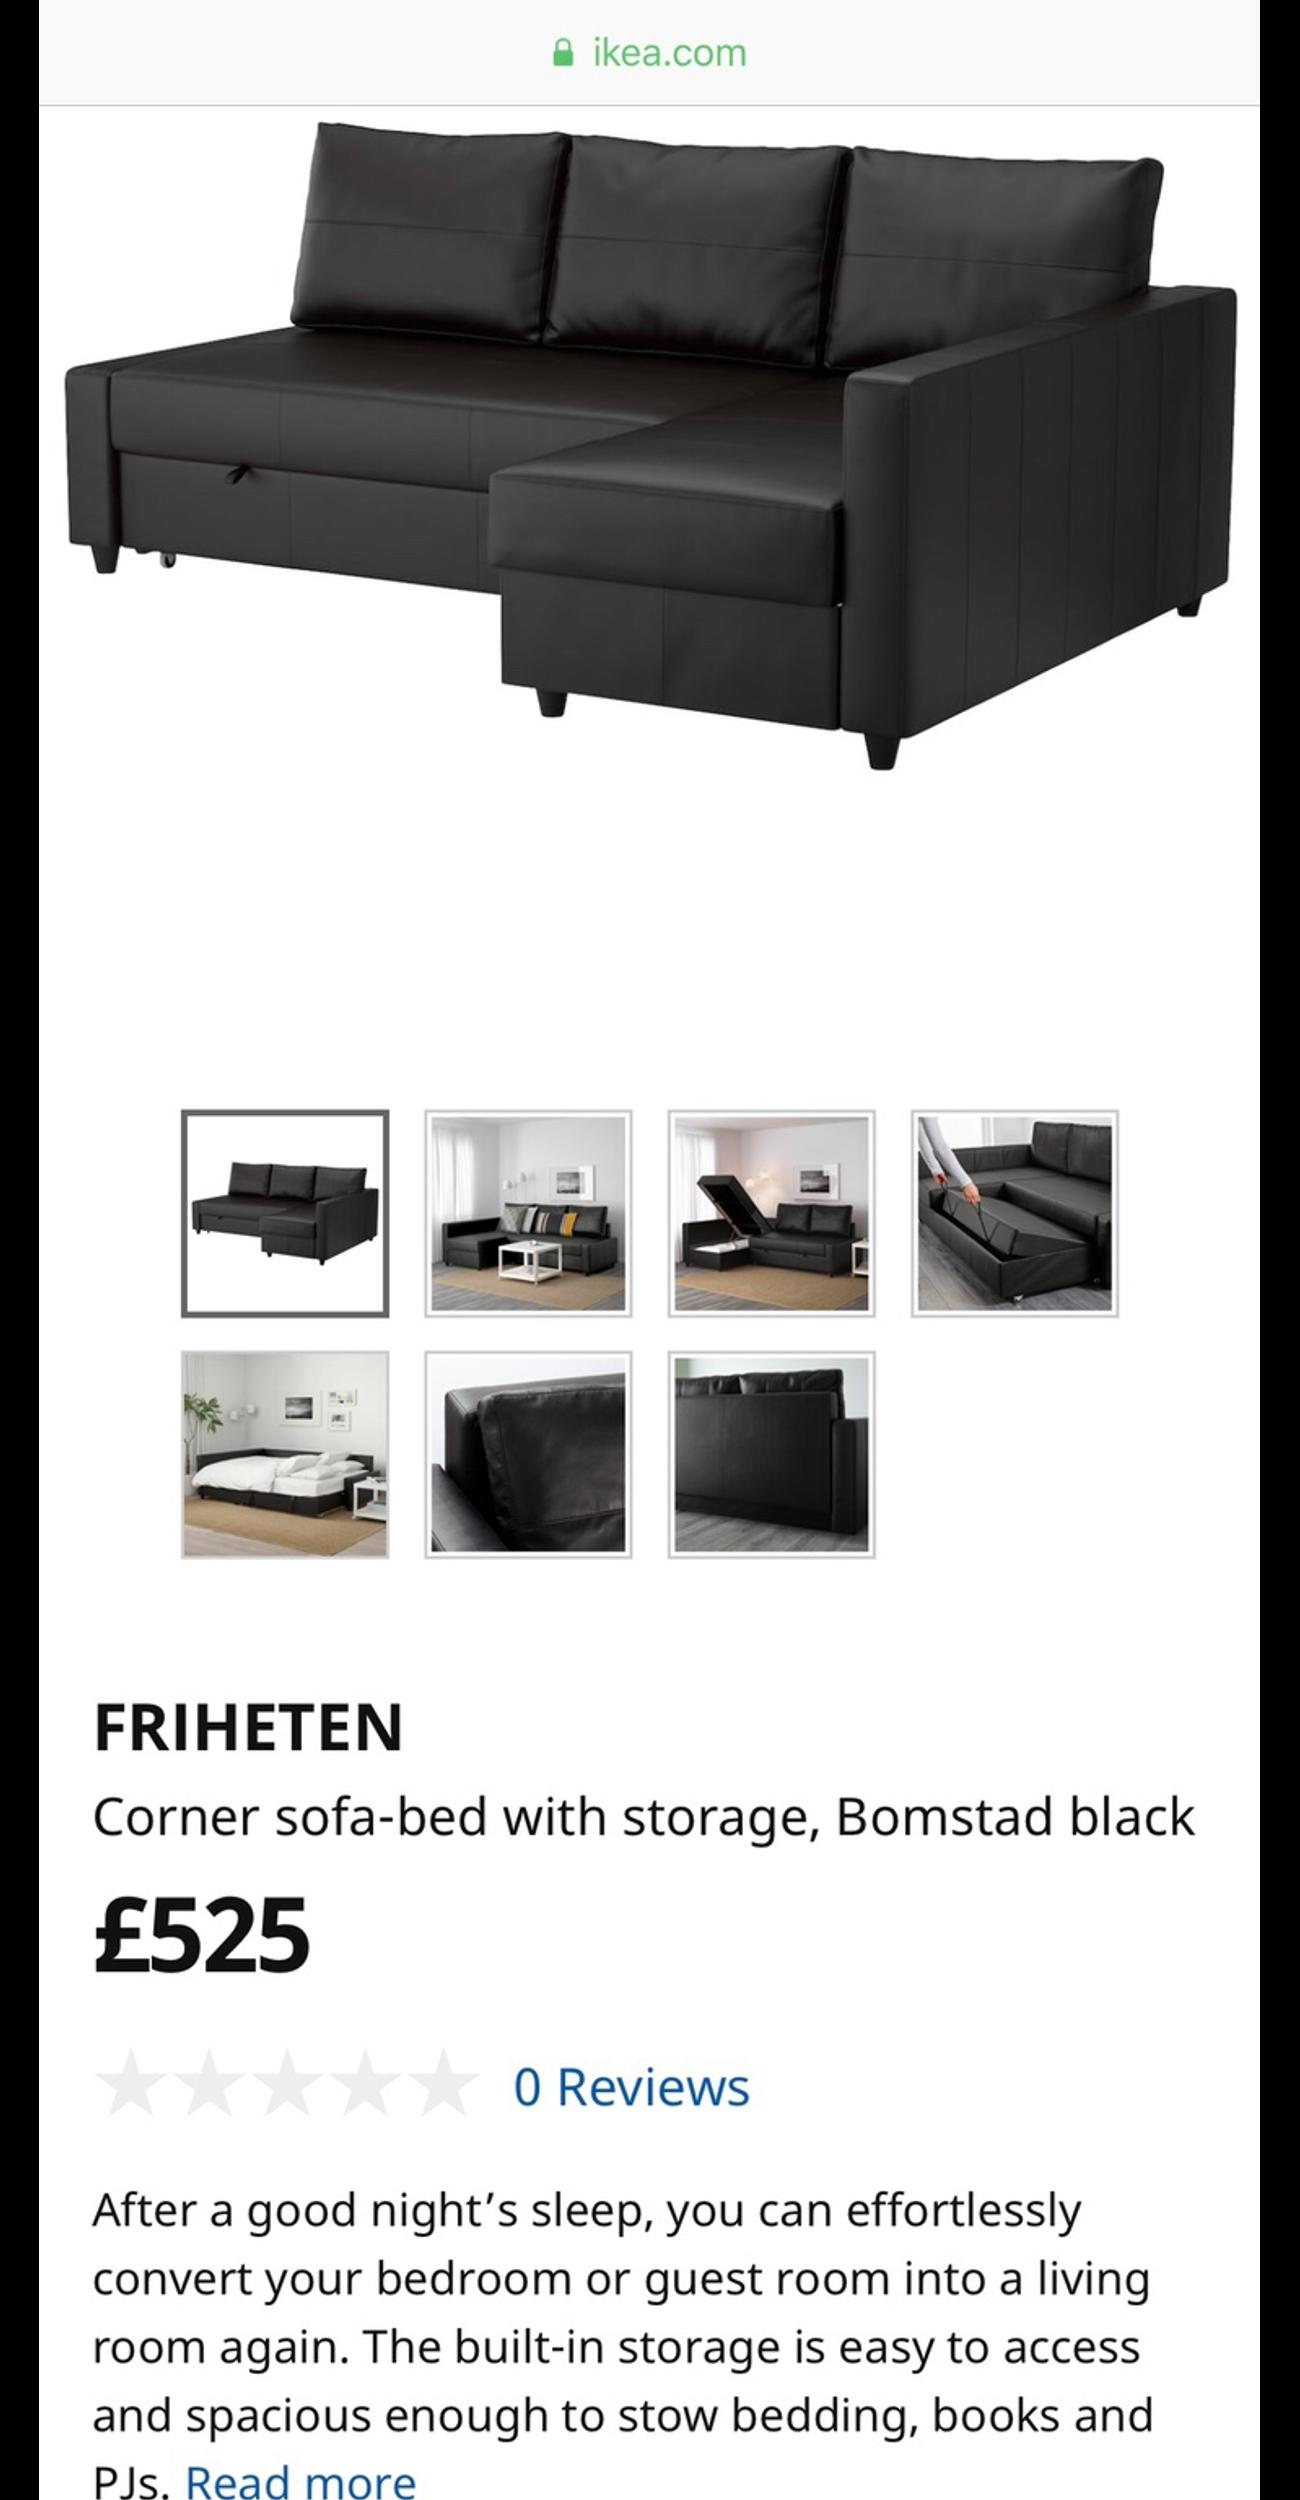 Marvelous Ikea Corner Sofa Bed With Storage In W2 Westminster For Onthecornerstone Fun Painted Chair Ideas Images Onthecornerstoneorg